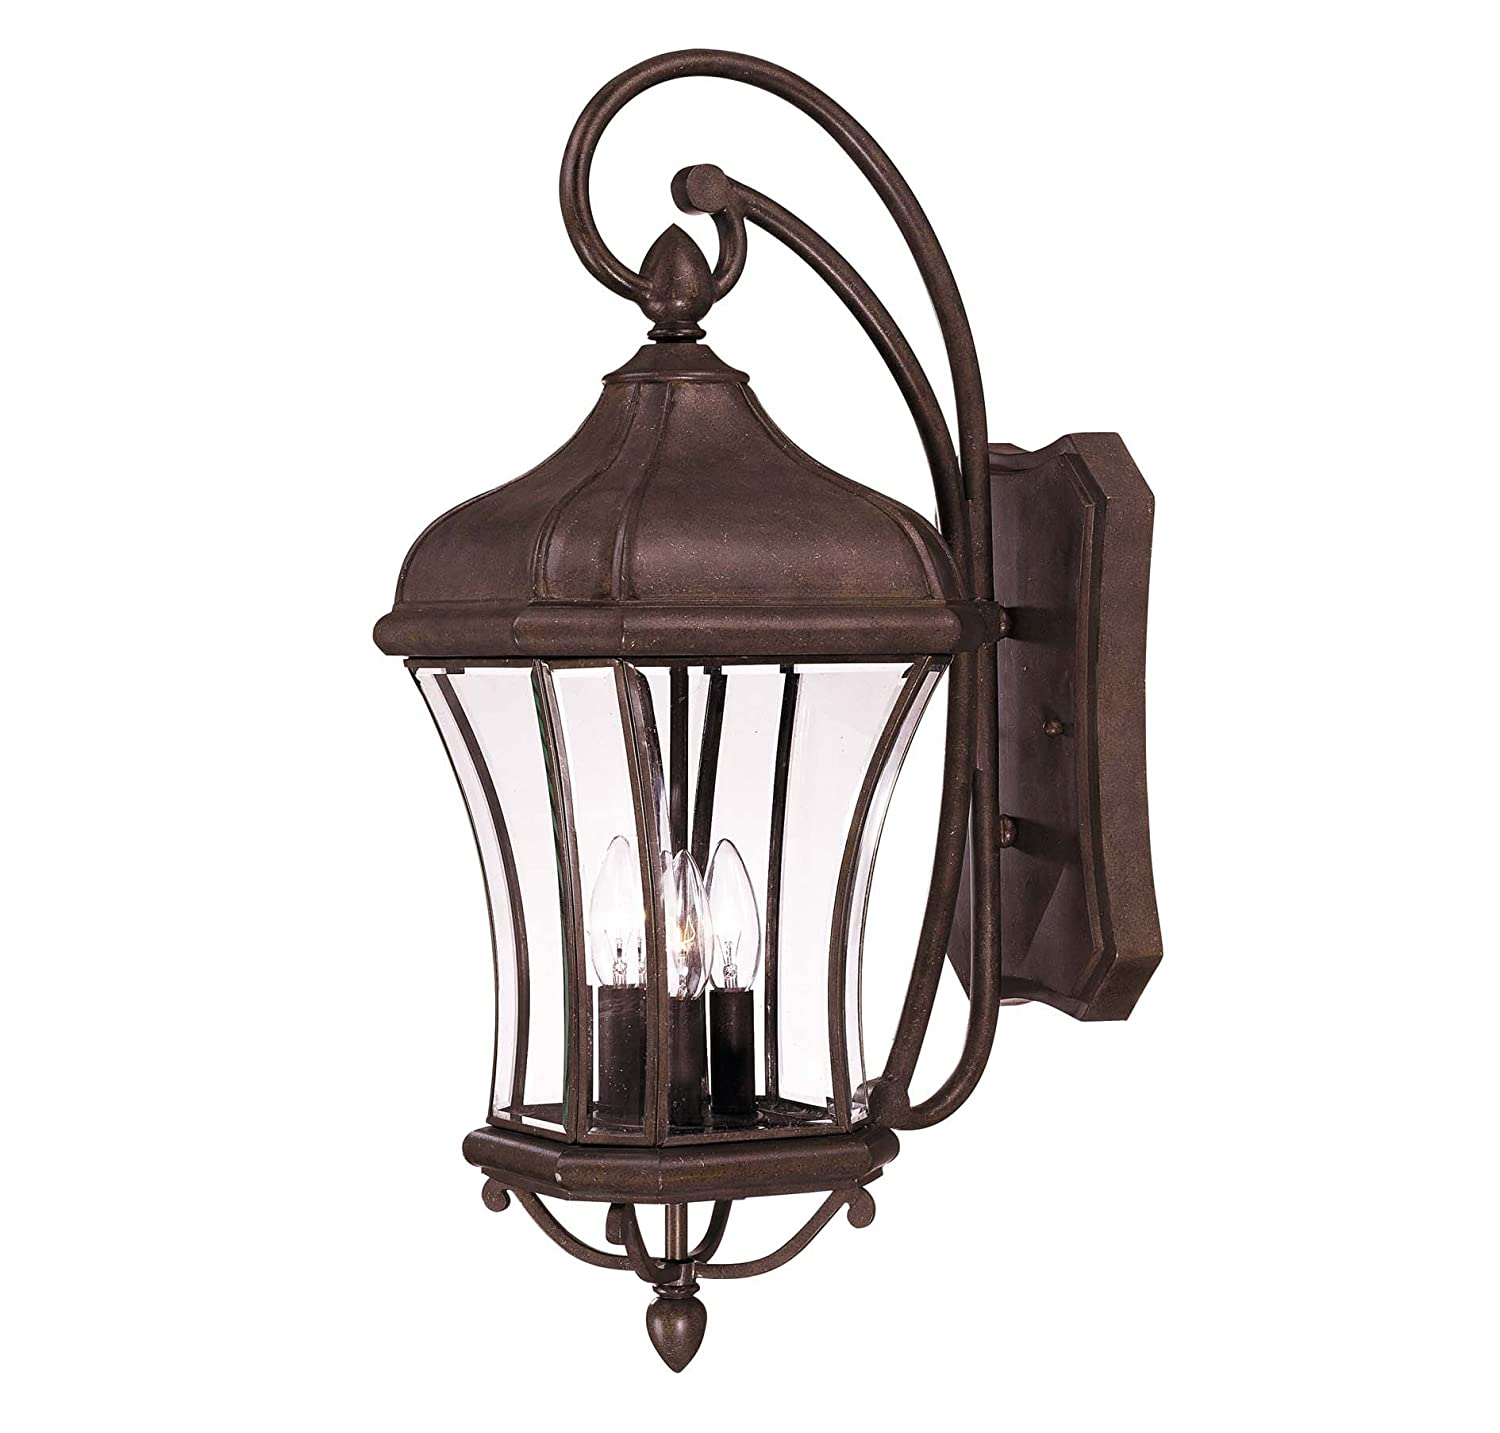 Savoy House 5-3802-40 Outdoor Sconce with Clear Beveled Shades, Walnut Patina Finish by Savoy House B0014HGYDU